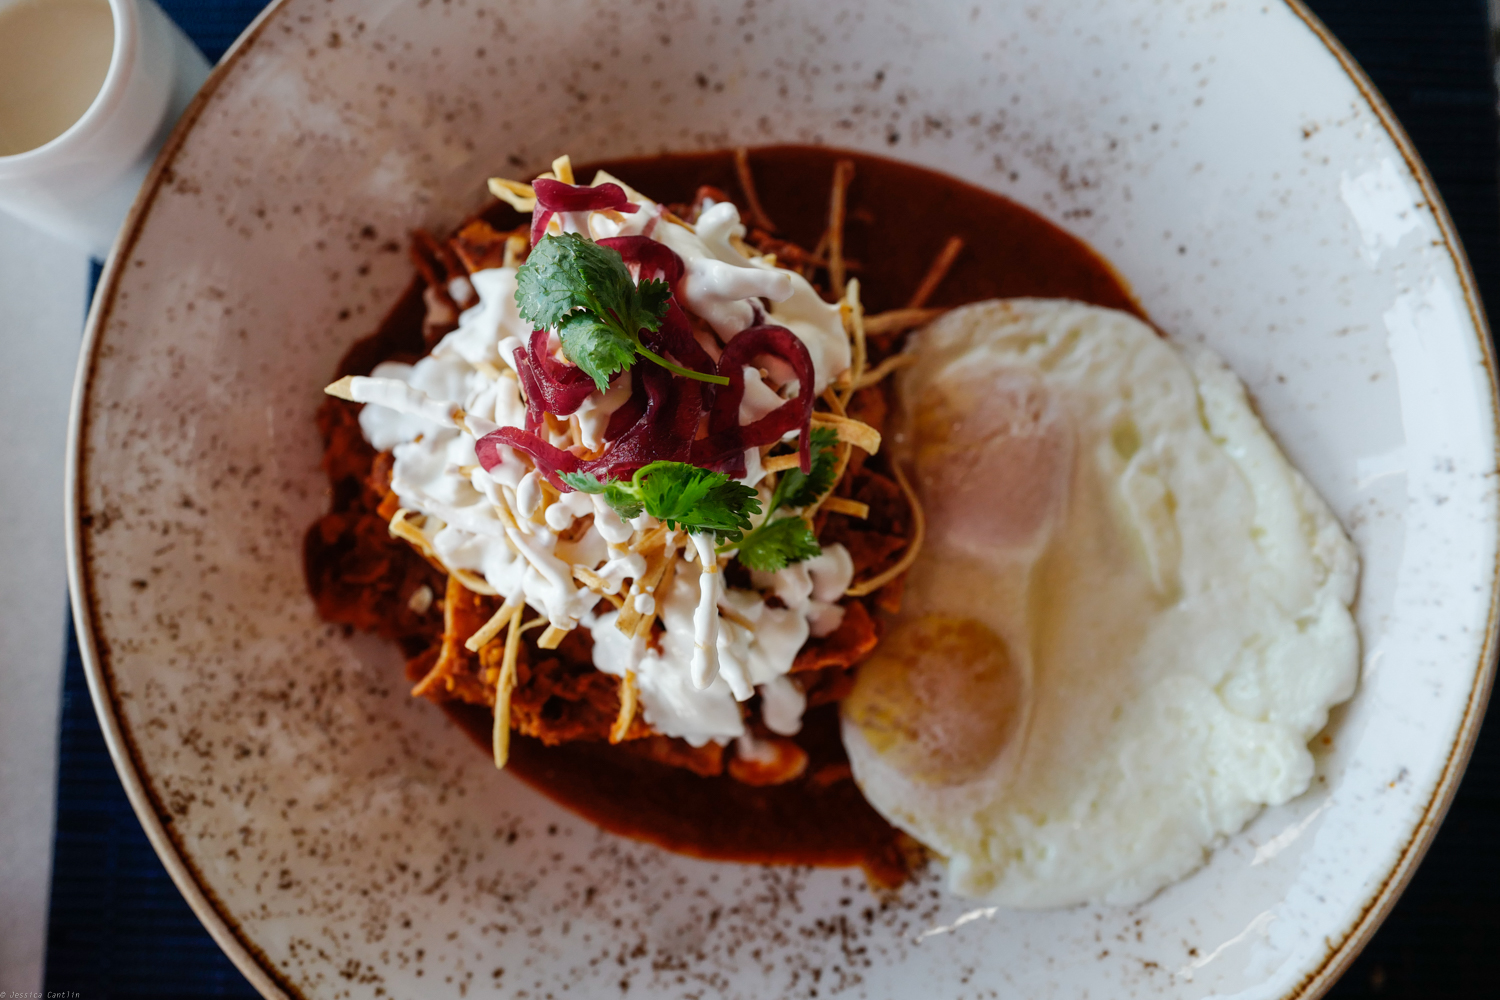 Chilaquiles at Mezcal